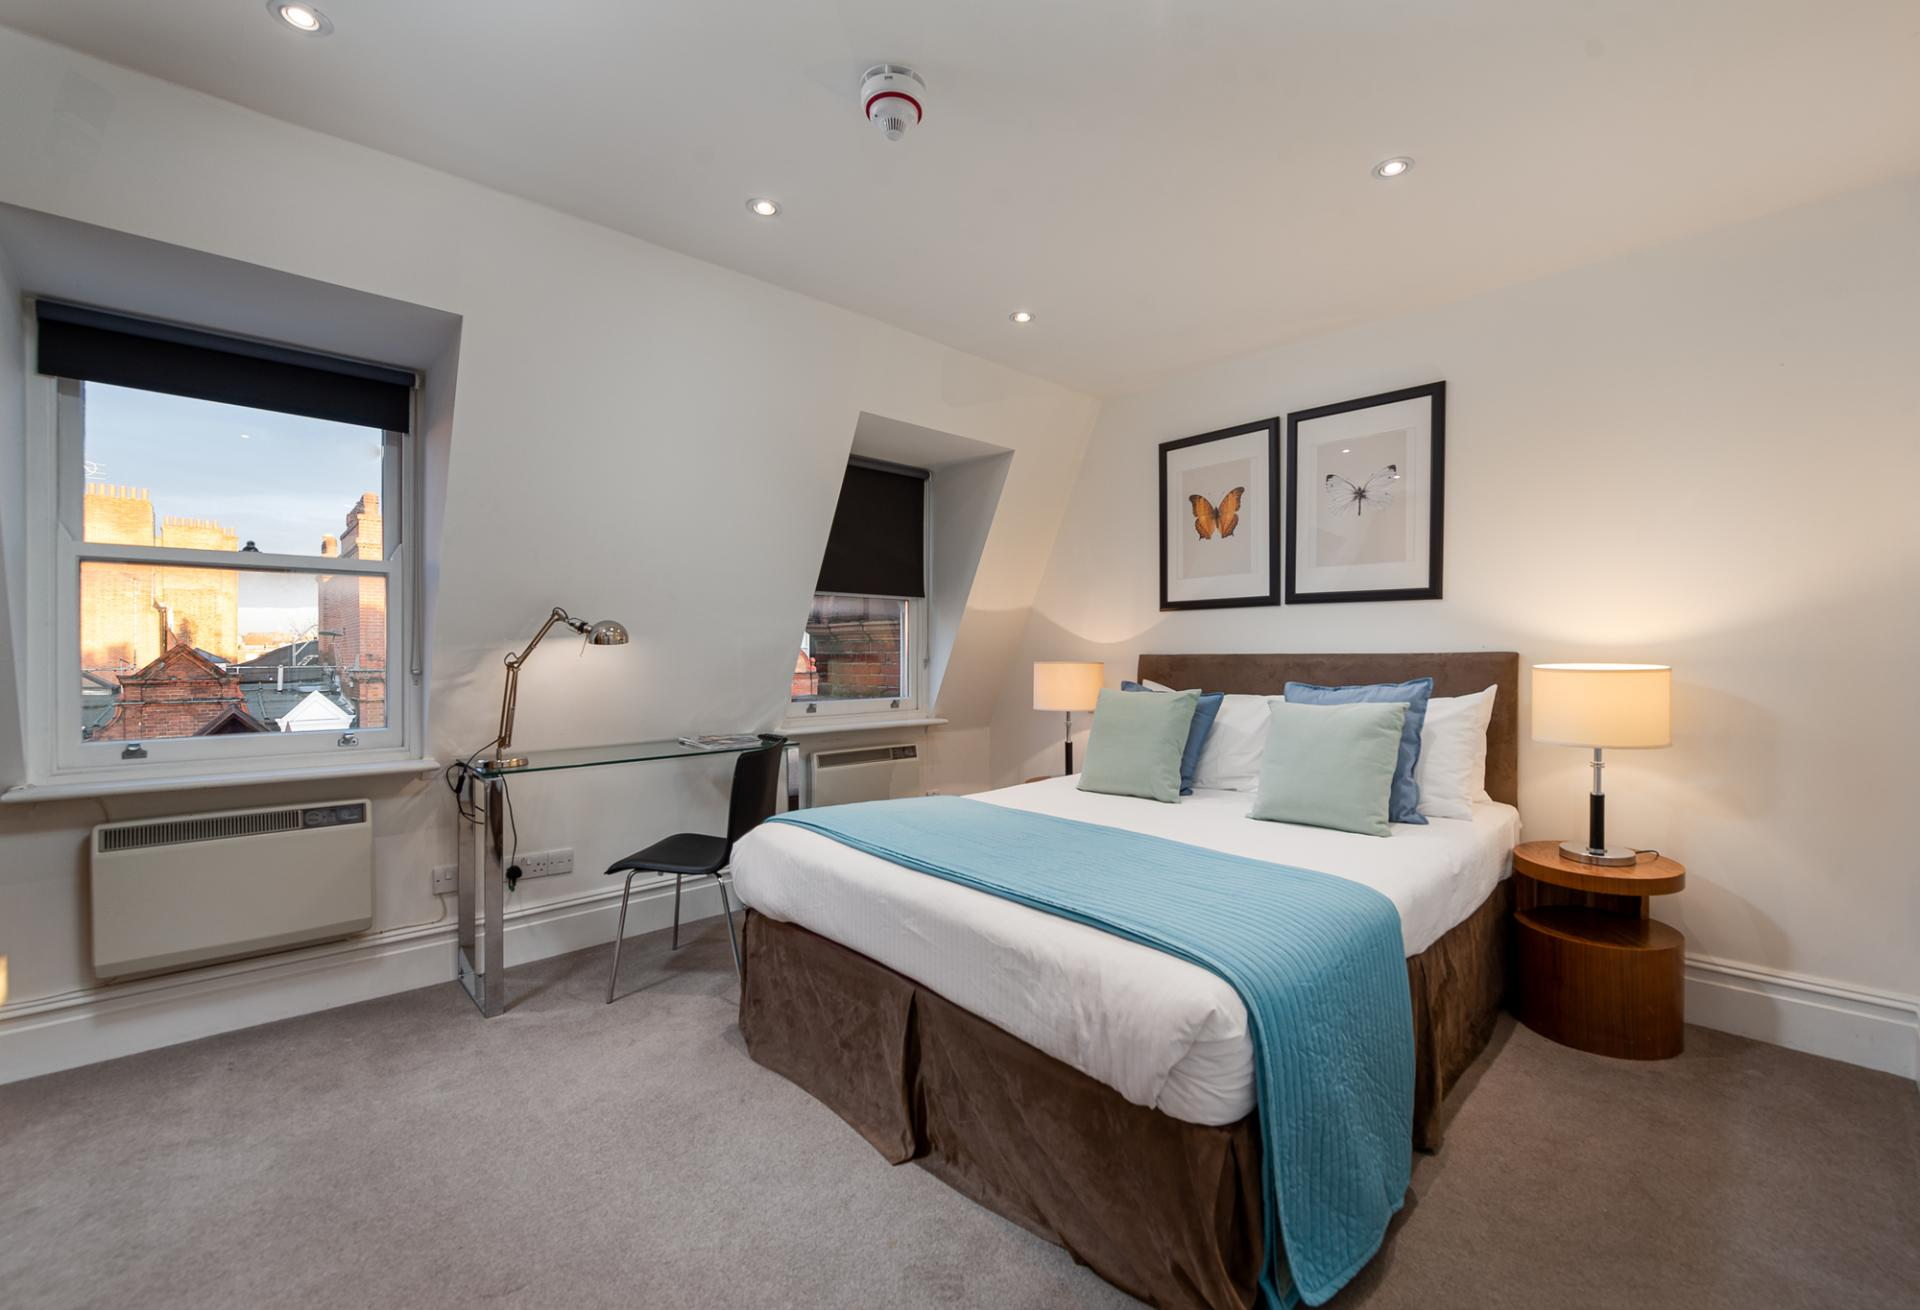 Bedroom at Draycott Place Serviced Apartments, Chelsea, London - Citybase Apartments